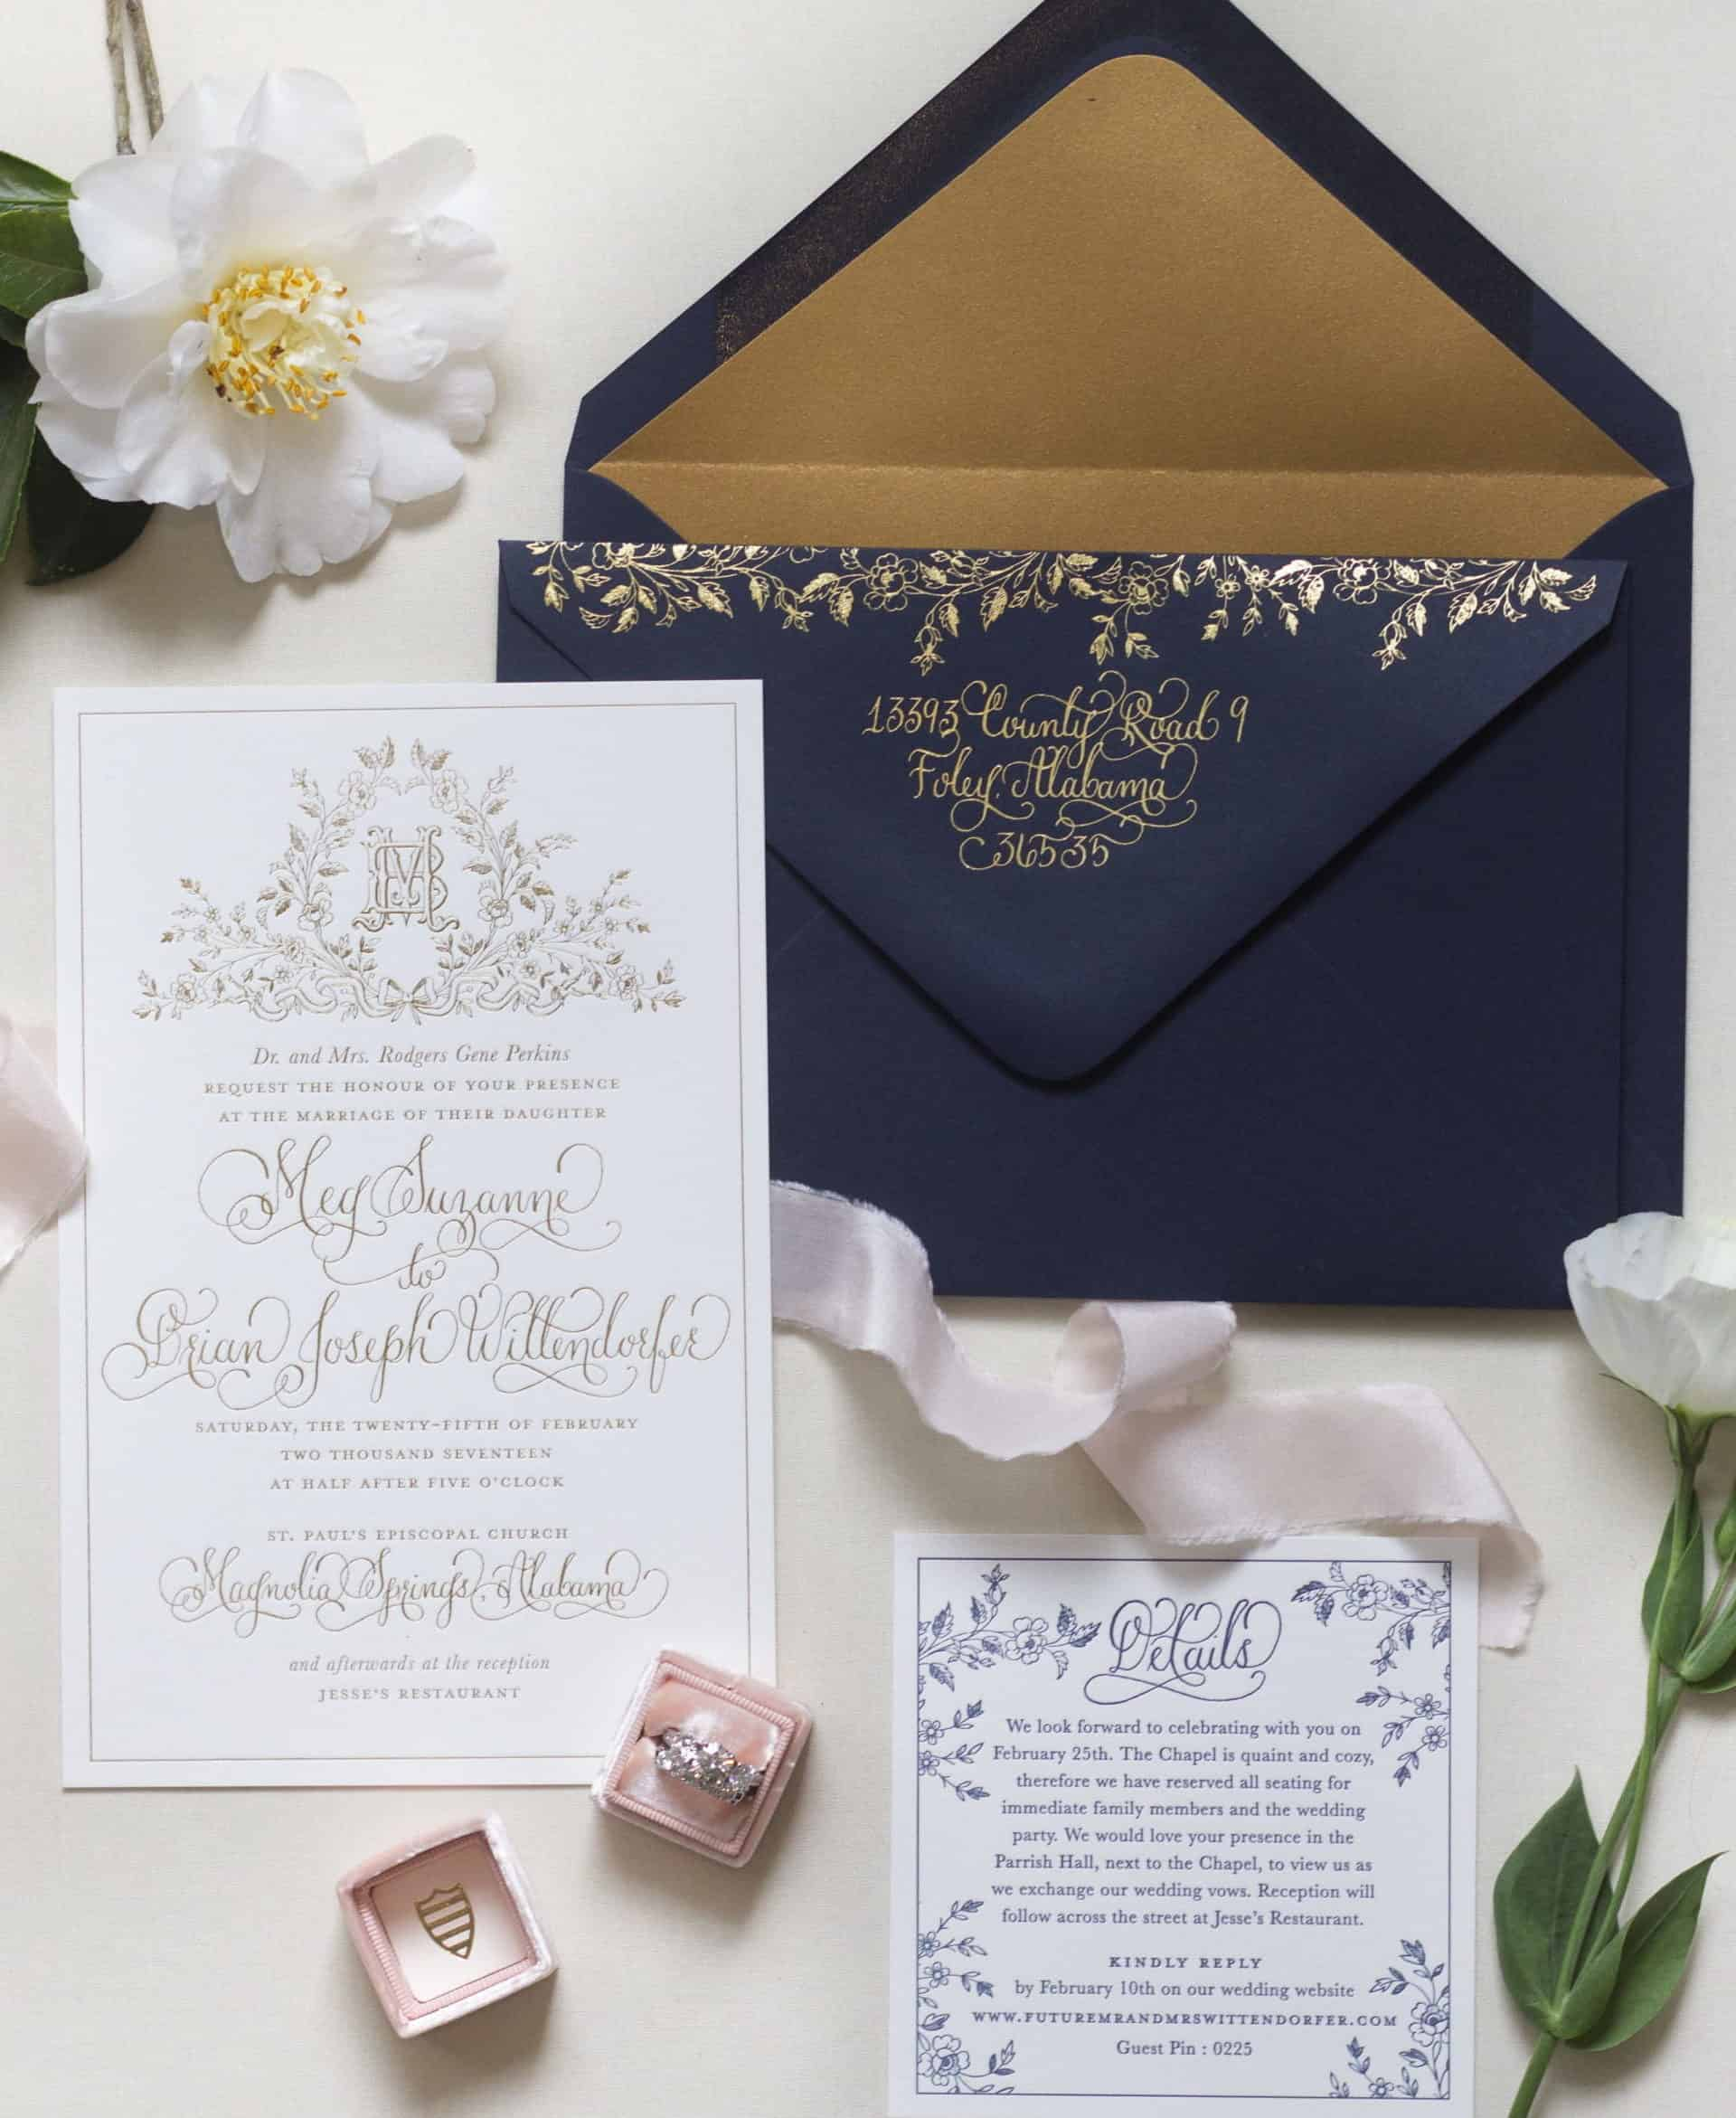 top shoot wedding invitation with navy blue envelope, gold foil and wedding ring in the box